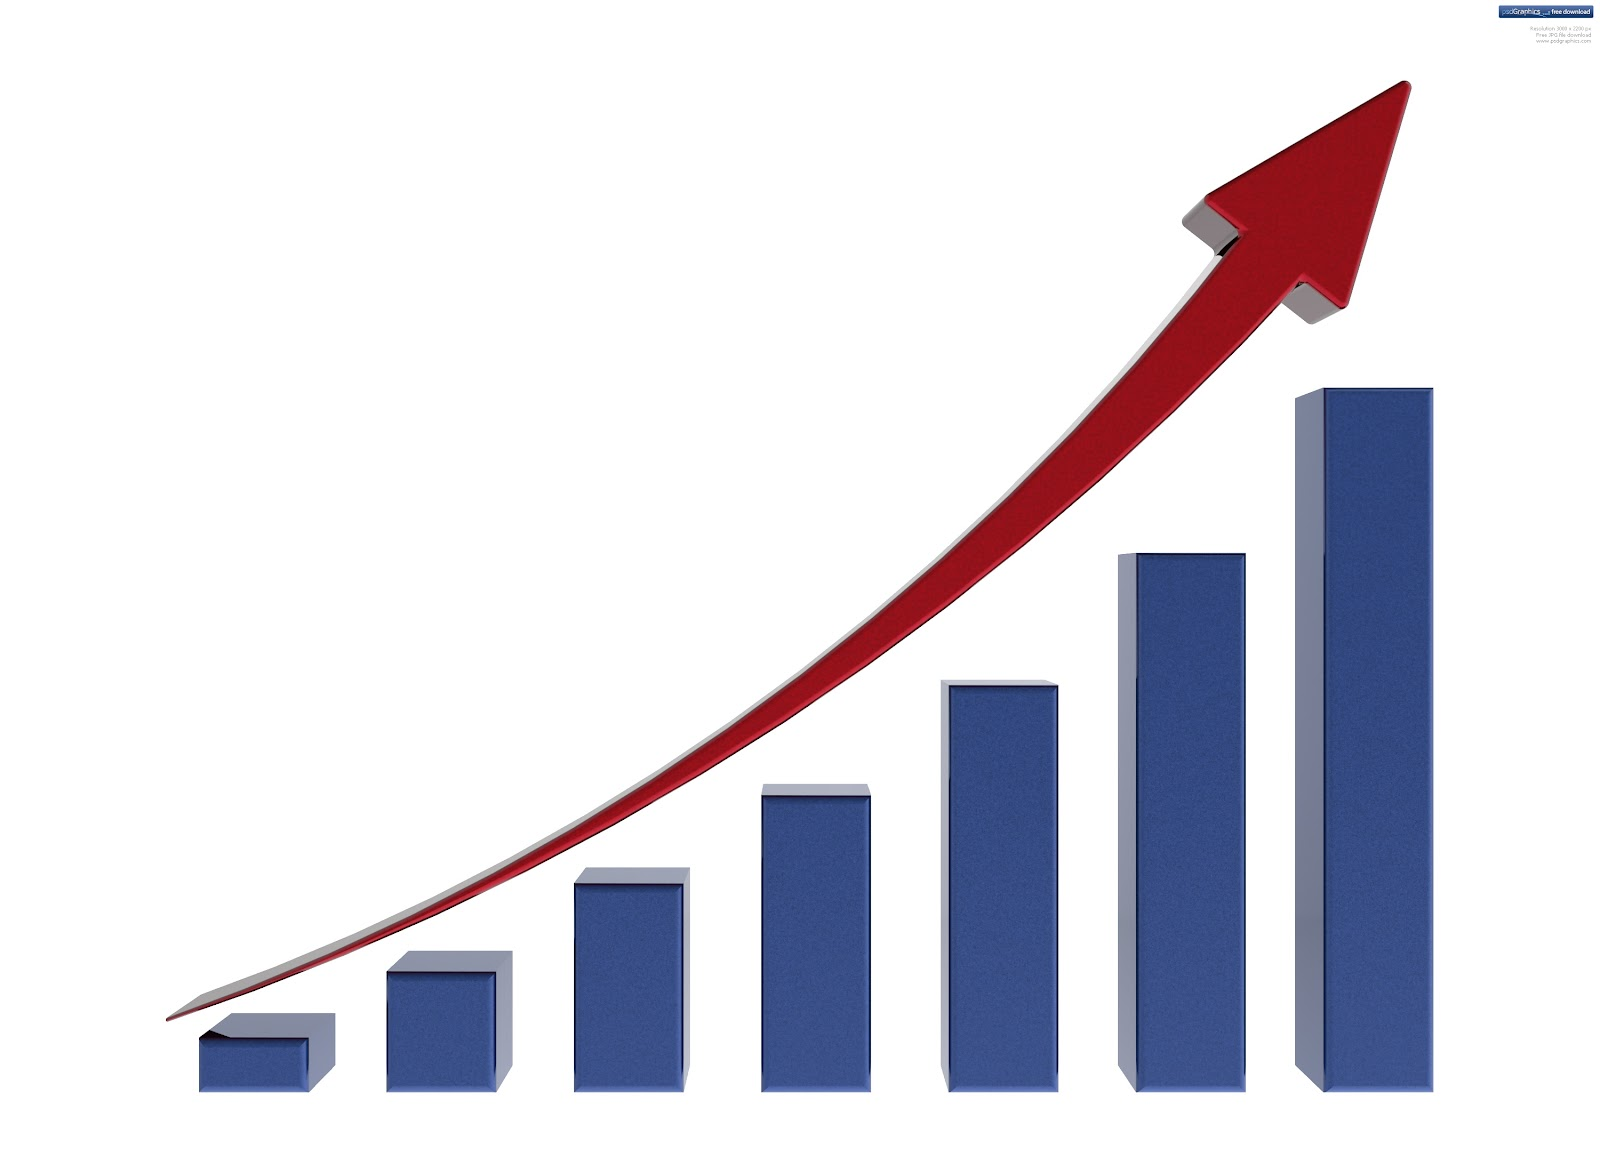 Georgia's economy grows 4.7% in May 2019